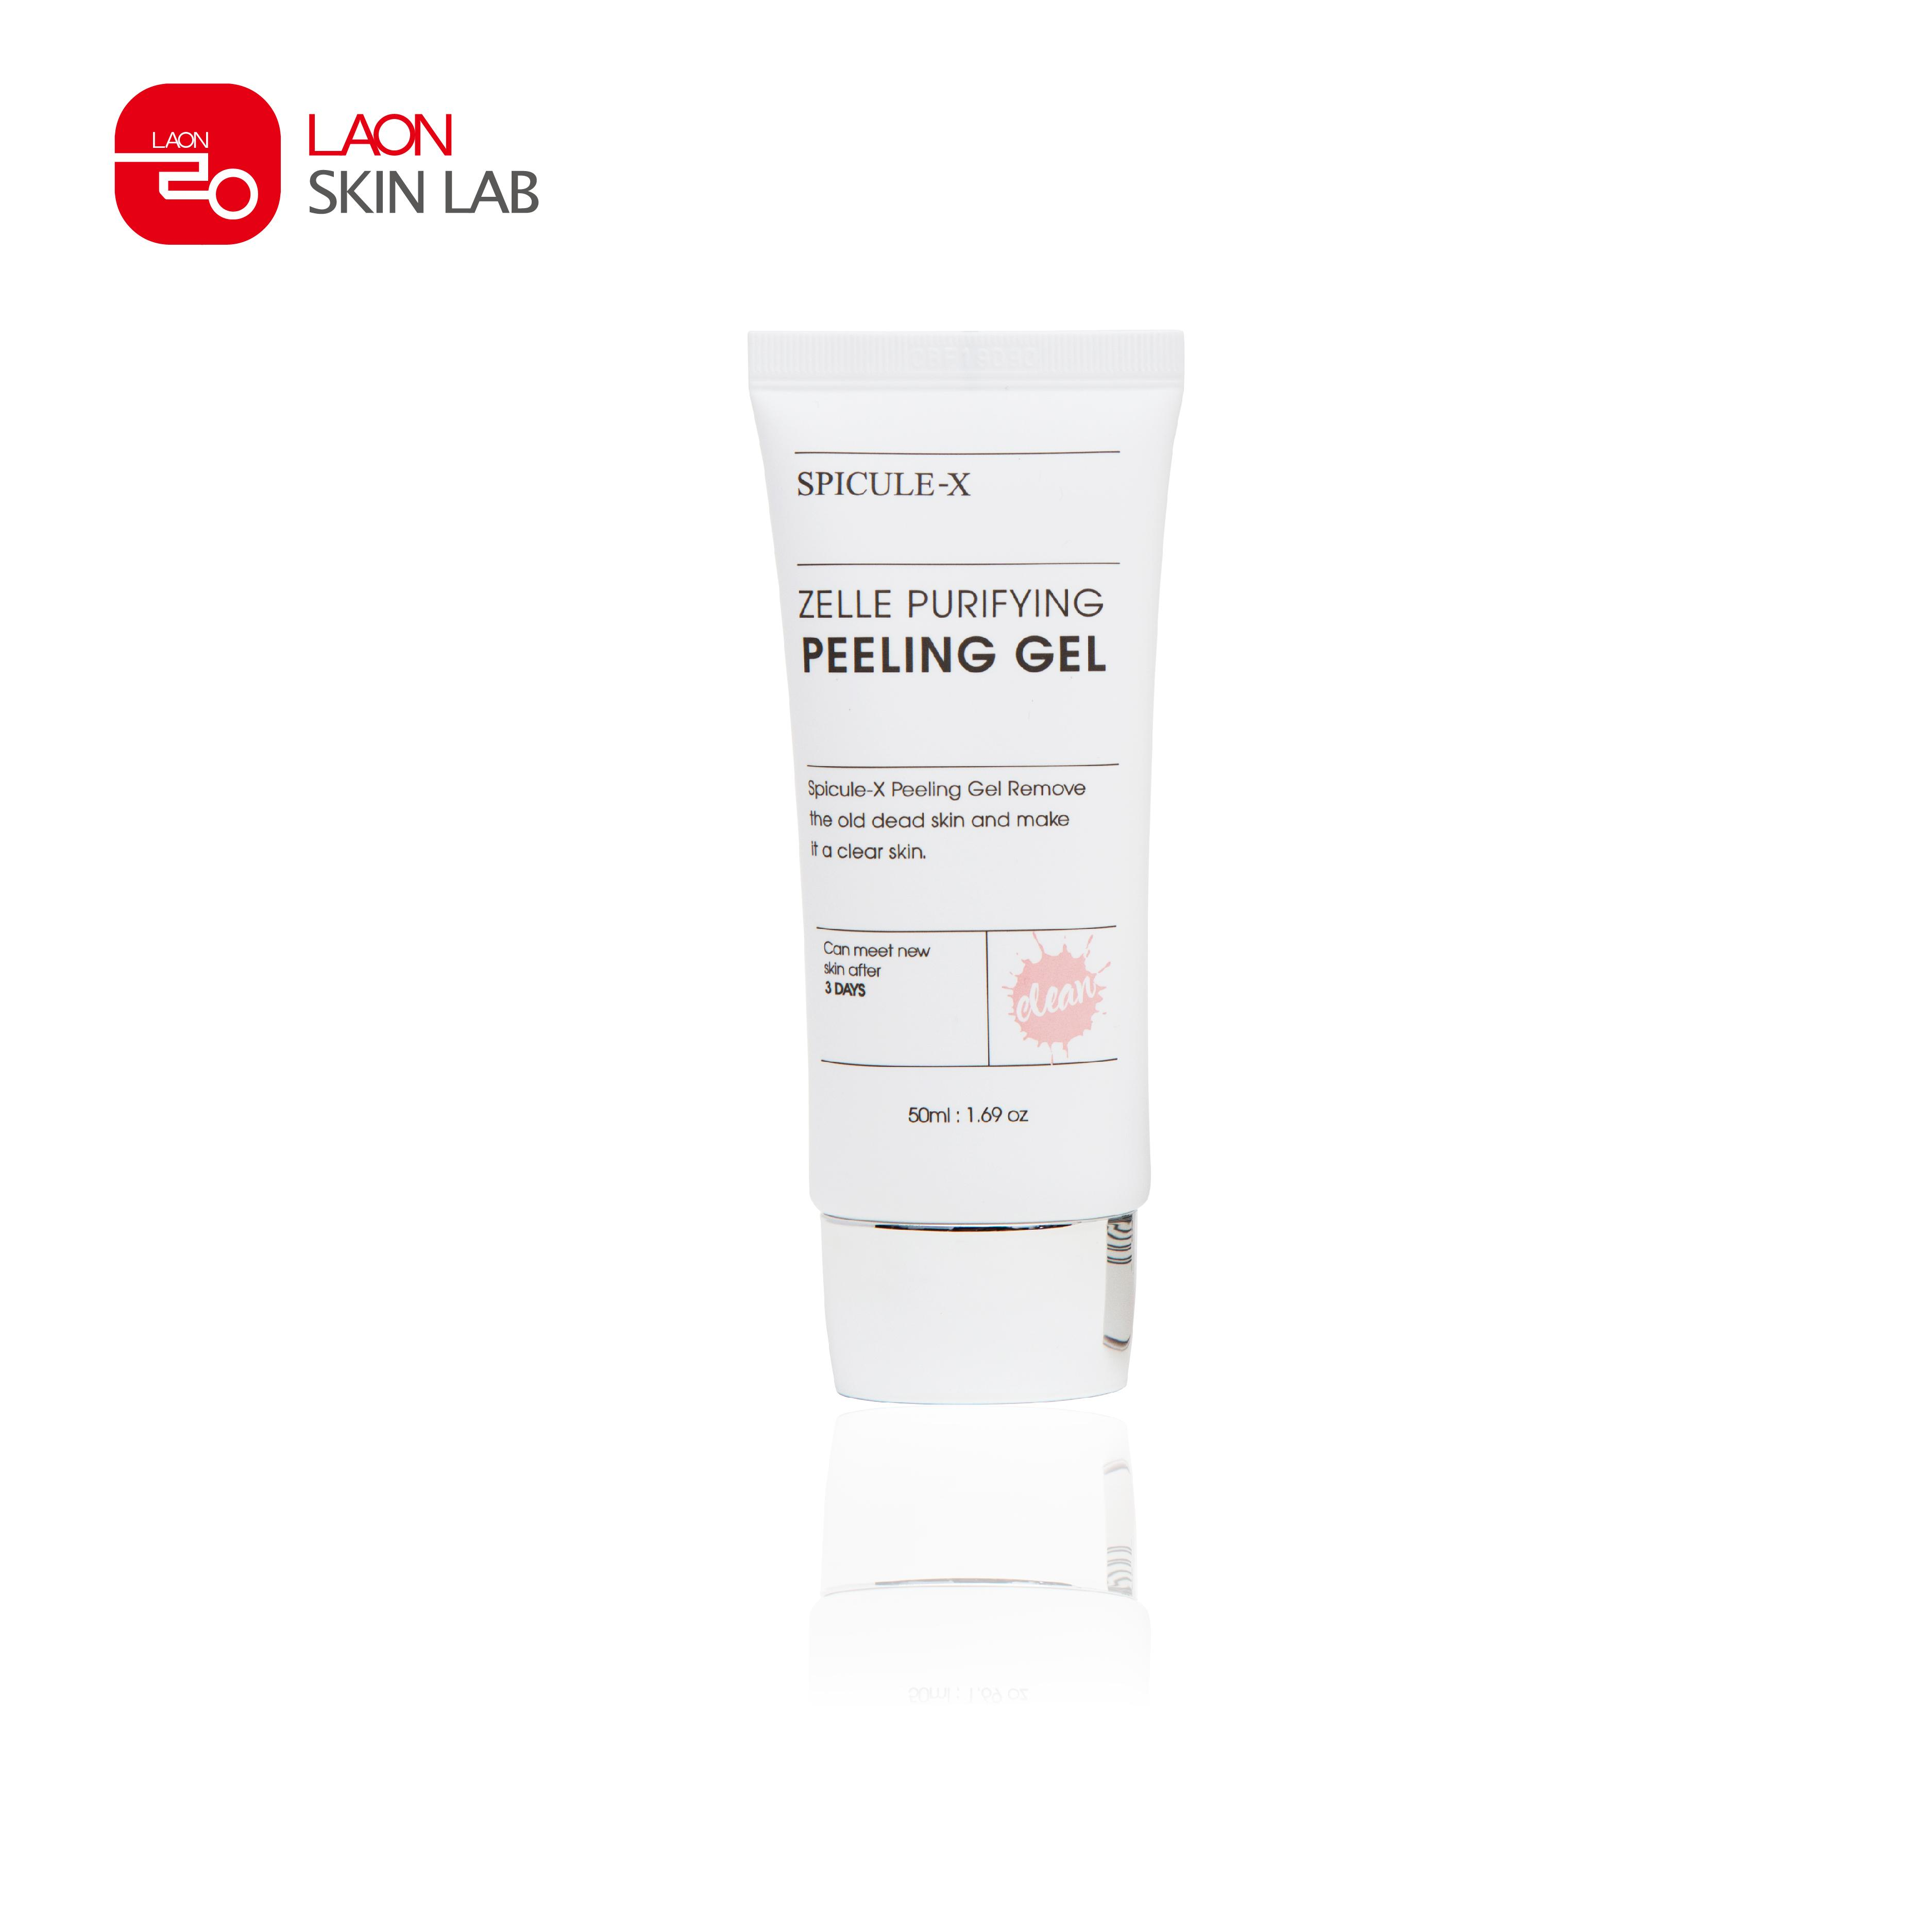 TẨY TẾ BÀO CHẾT SPICULE - X ZELLE PURIFYING PEELING GEL cao cấp